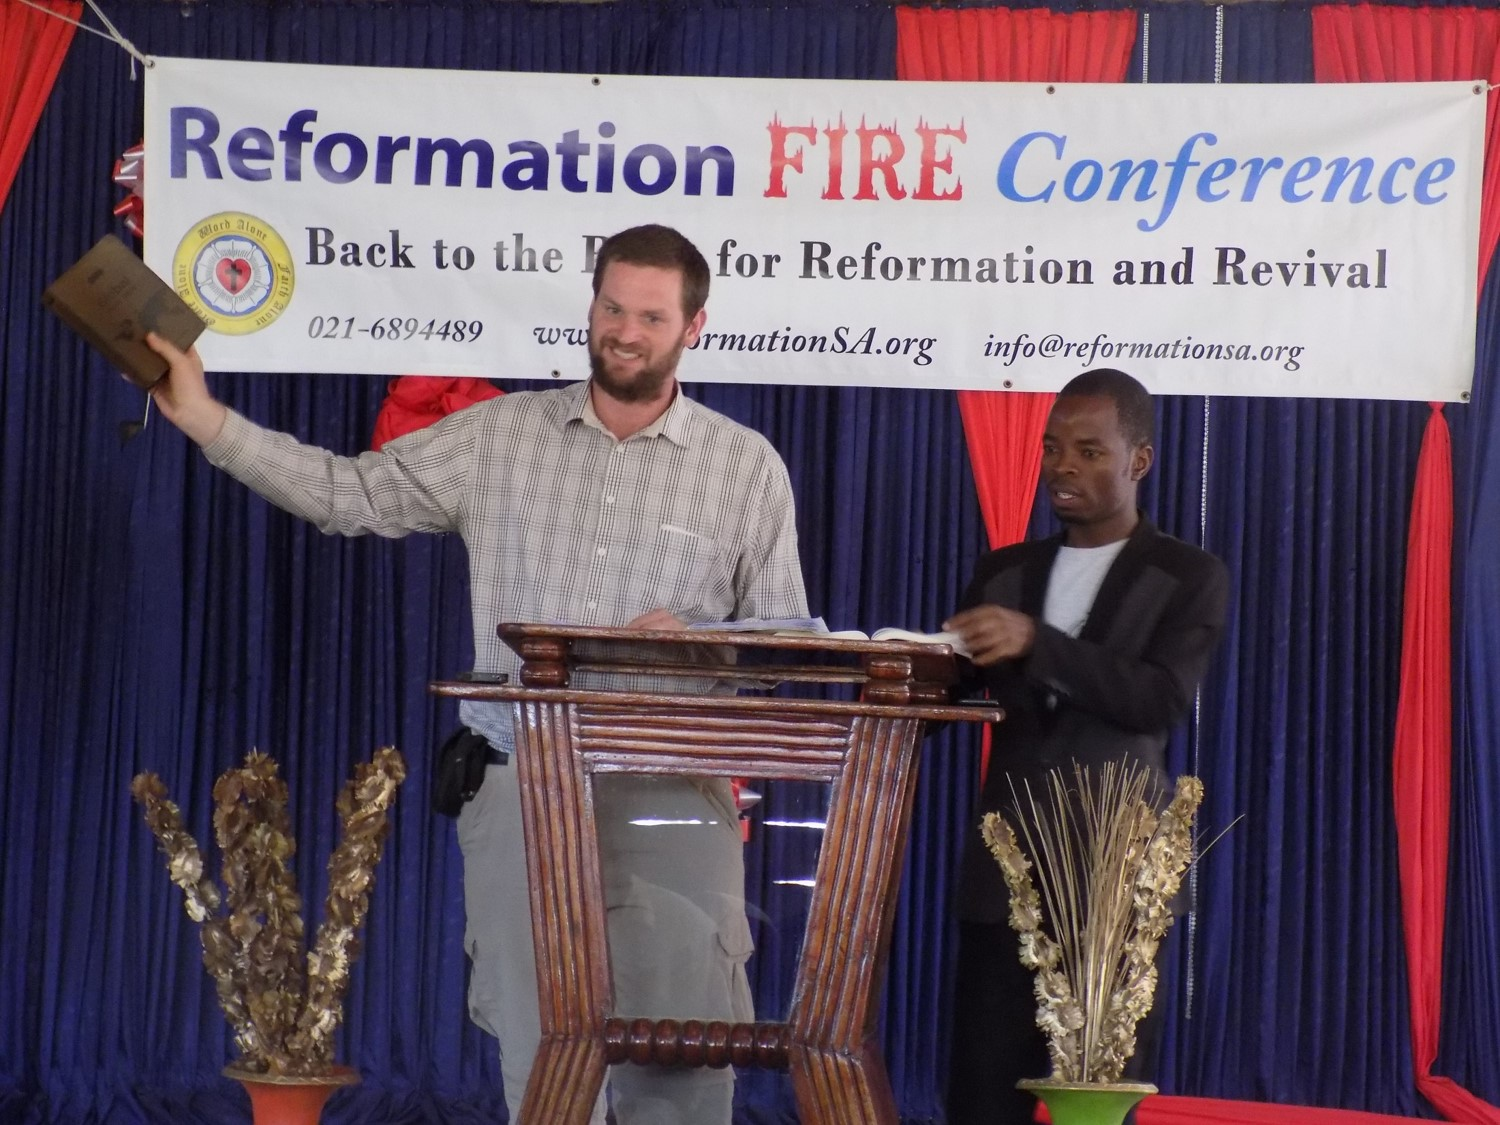 Back to the BIble reformation conference malawi